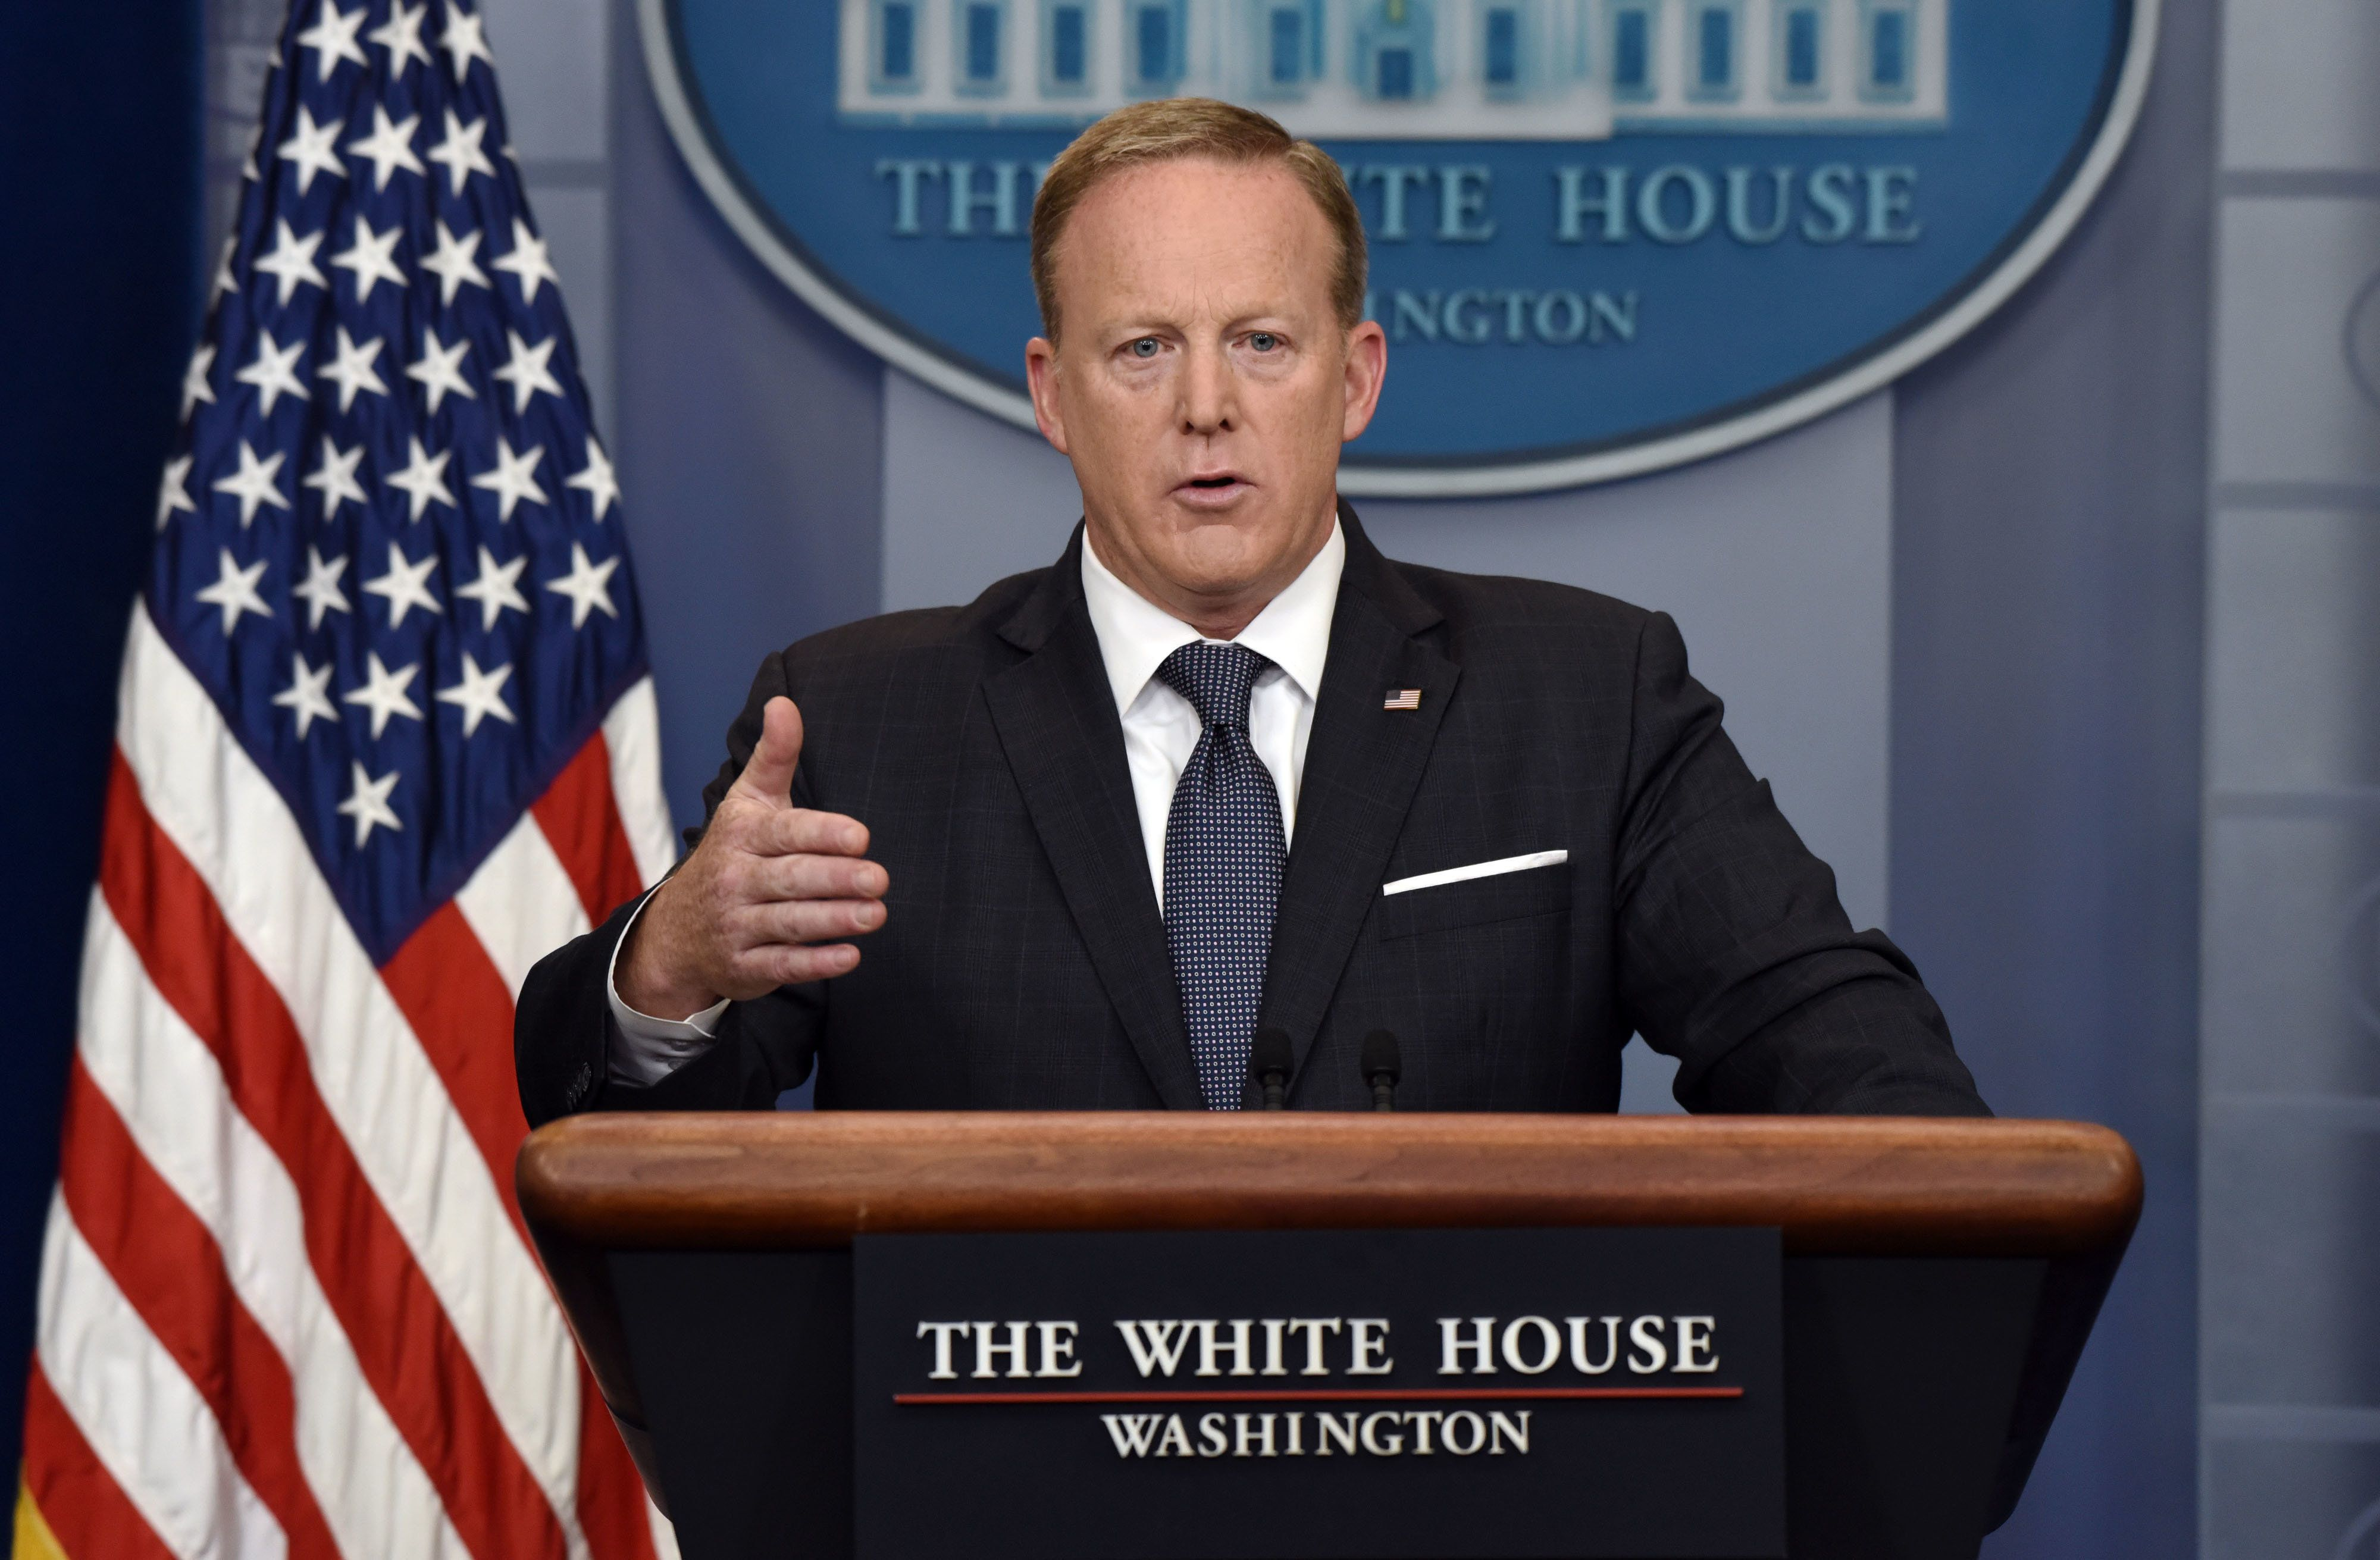 FILE: Sean Spicer, White House press secretary, speaks during a White House press briefing in Washington, D.C., U.S., on Tuesday, May 30, 2017. Sunday, January 20, 2019, marks the second anniversary of U.S. President Donald Trump's inauguration. Our editors select the best archive images looking back over Trumps second year in office. Photographer: Olivier Douliery/Bloomberg via Getty Images